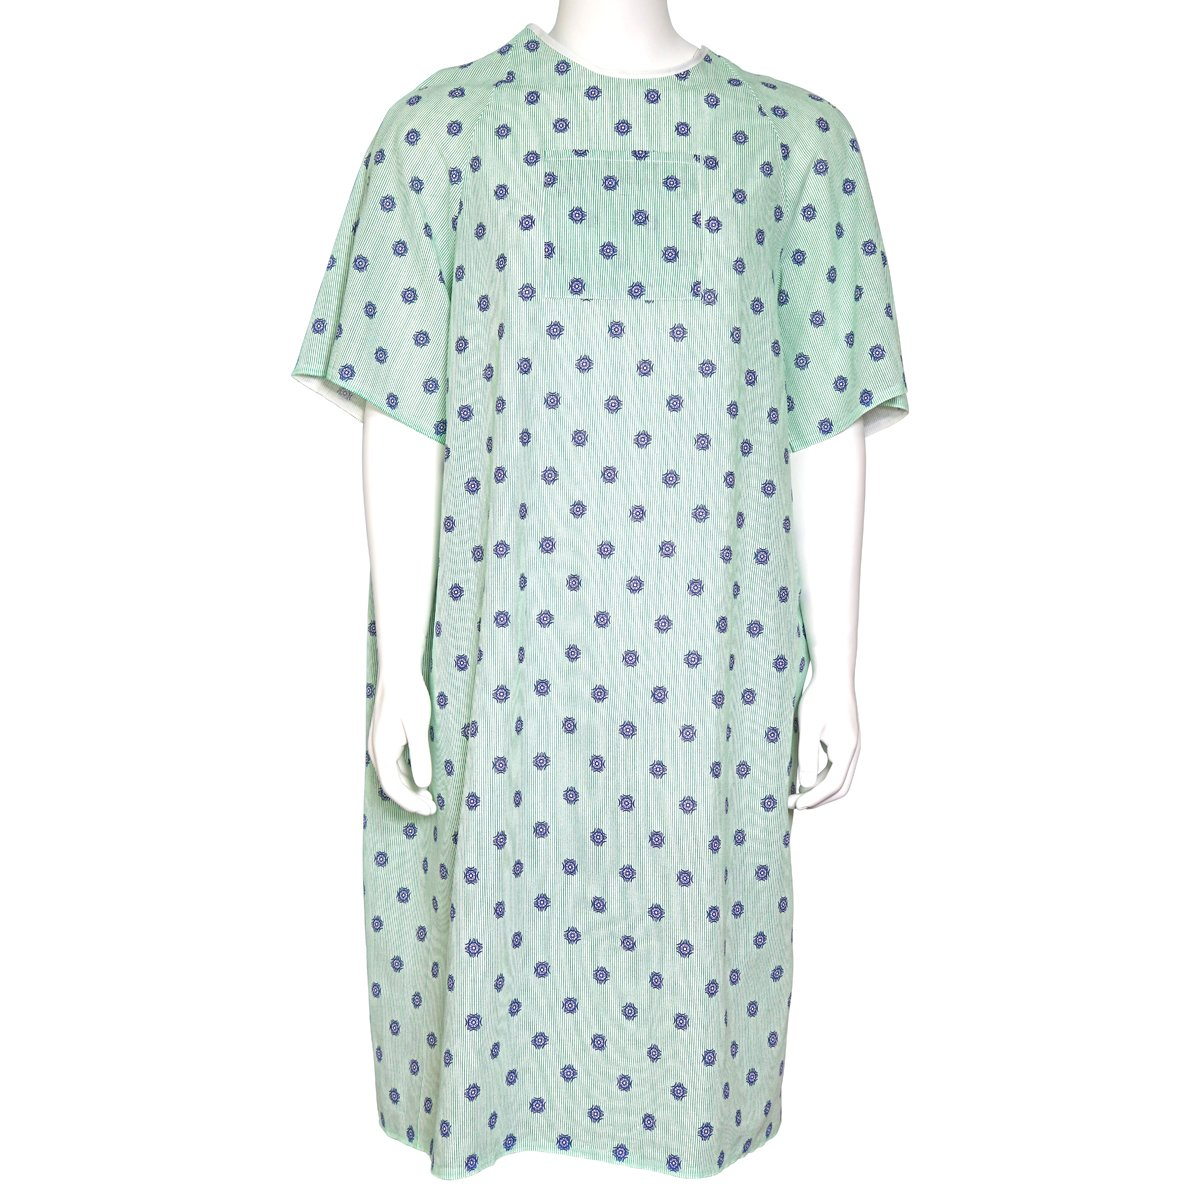 PREMIUM SELECT IV GOWN 68''S X 49''L - PRINT - GREEN STRIPES AND BLUE SNOW FLAKE PATTERN ON WHITE